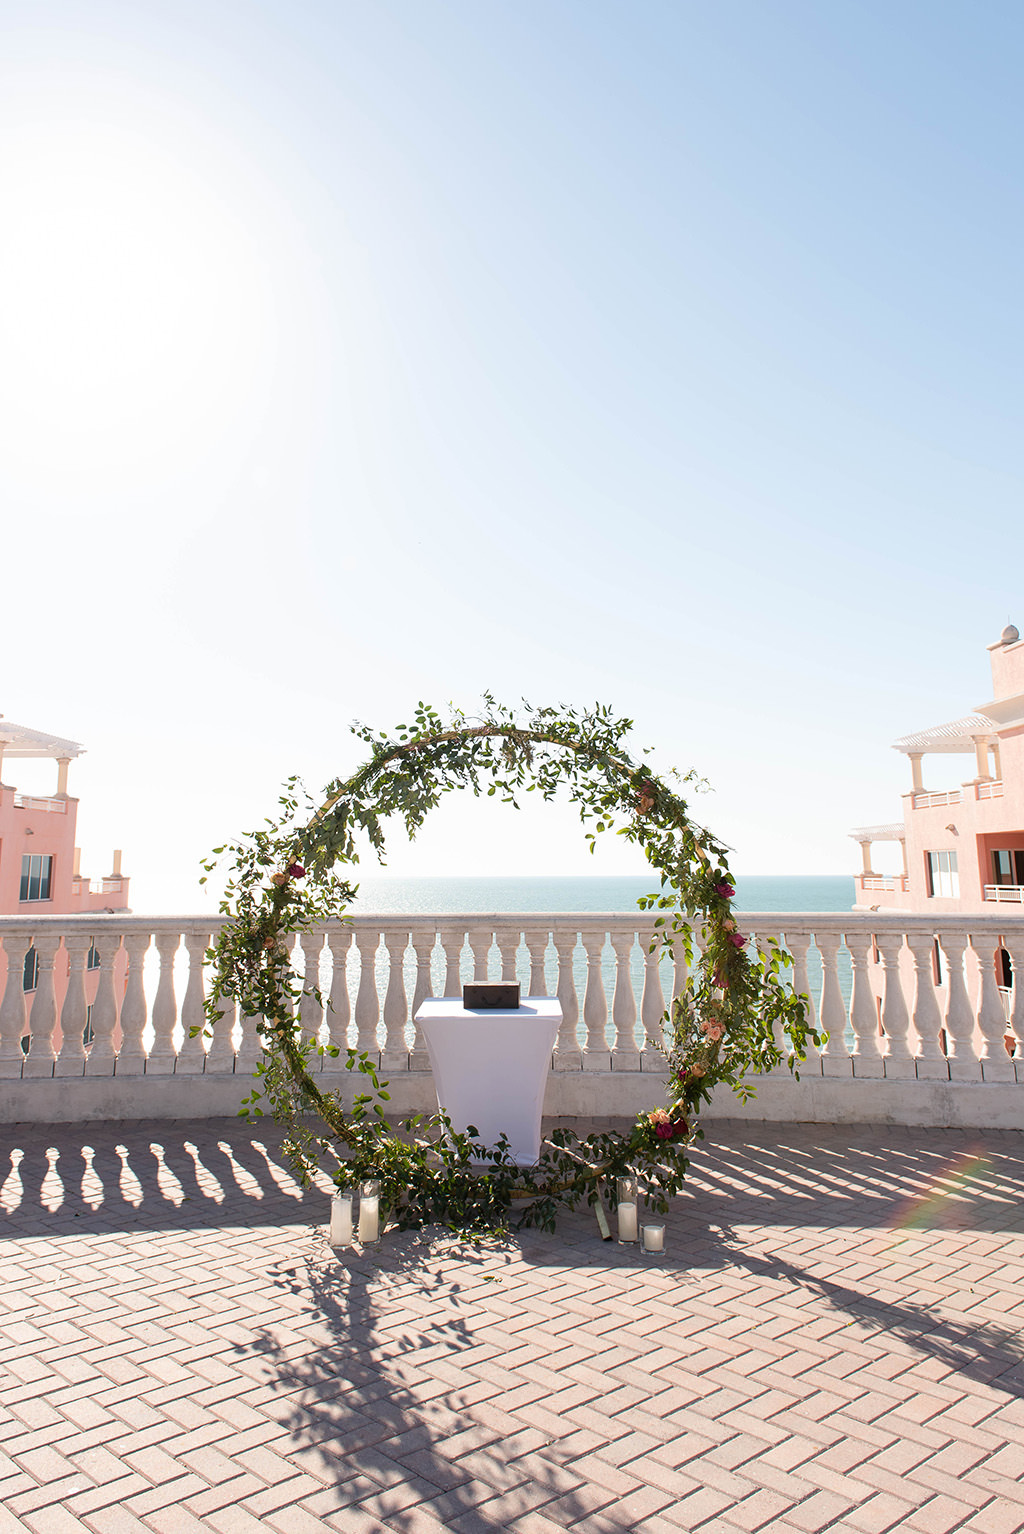 INSTAGRAM WEEKLY ROUND UP Elegant Waterfront Rooftop Wedding Ceremony Decor, White Folding Chairs, Circular Arch with Greenery and Floral Arrangements | Clearwater Beach Rooftop Wedding Venue Hyatt Regency Clearwater Beach | Wedding and Event Rentals Gabro Event Services